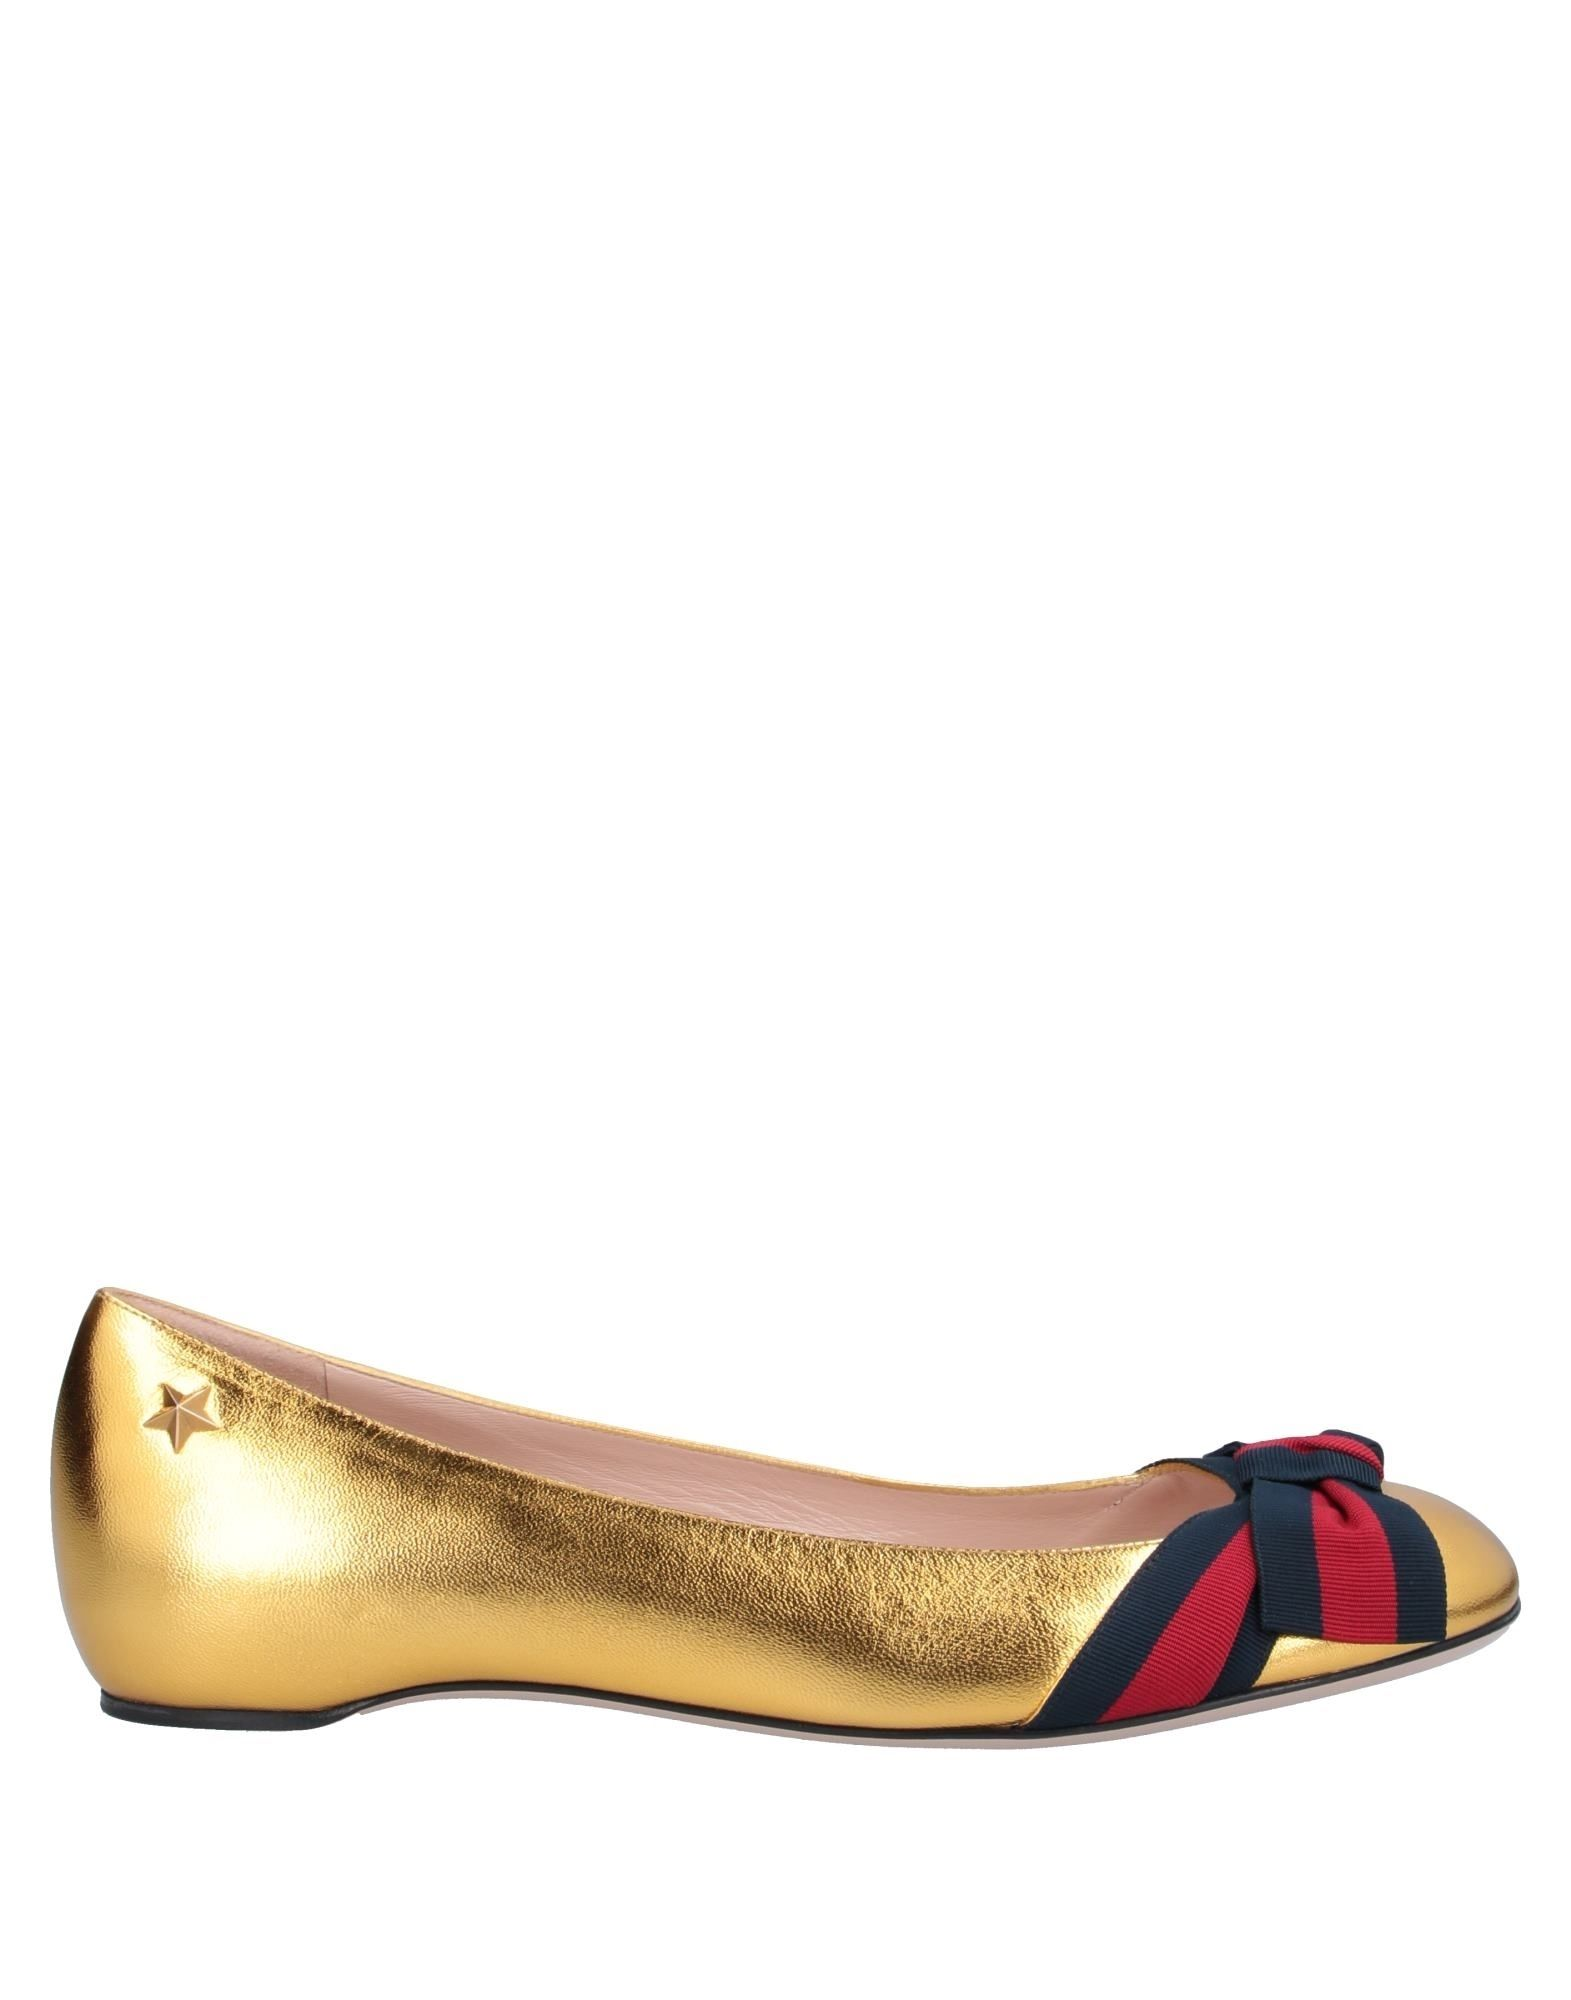 GUCCI Ballet flats. laminated effect, logo, solid color, nappa leather, round toeline, flat, leather lining, leather sole, contains non-textile parts of animal origin. Soft Leather